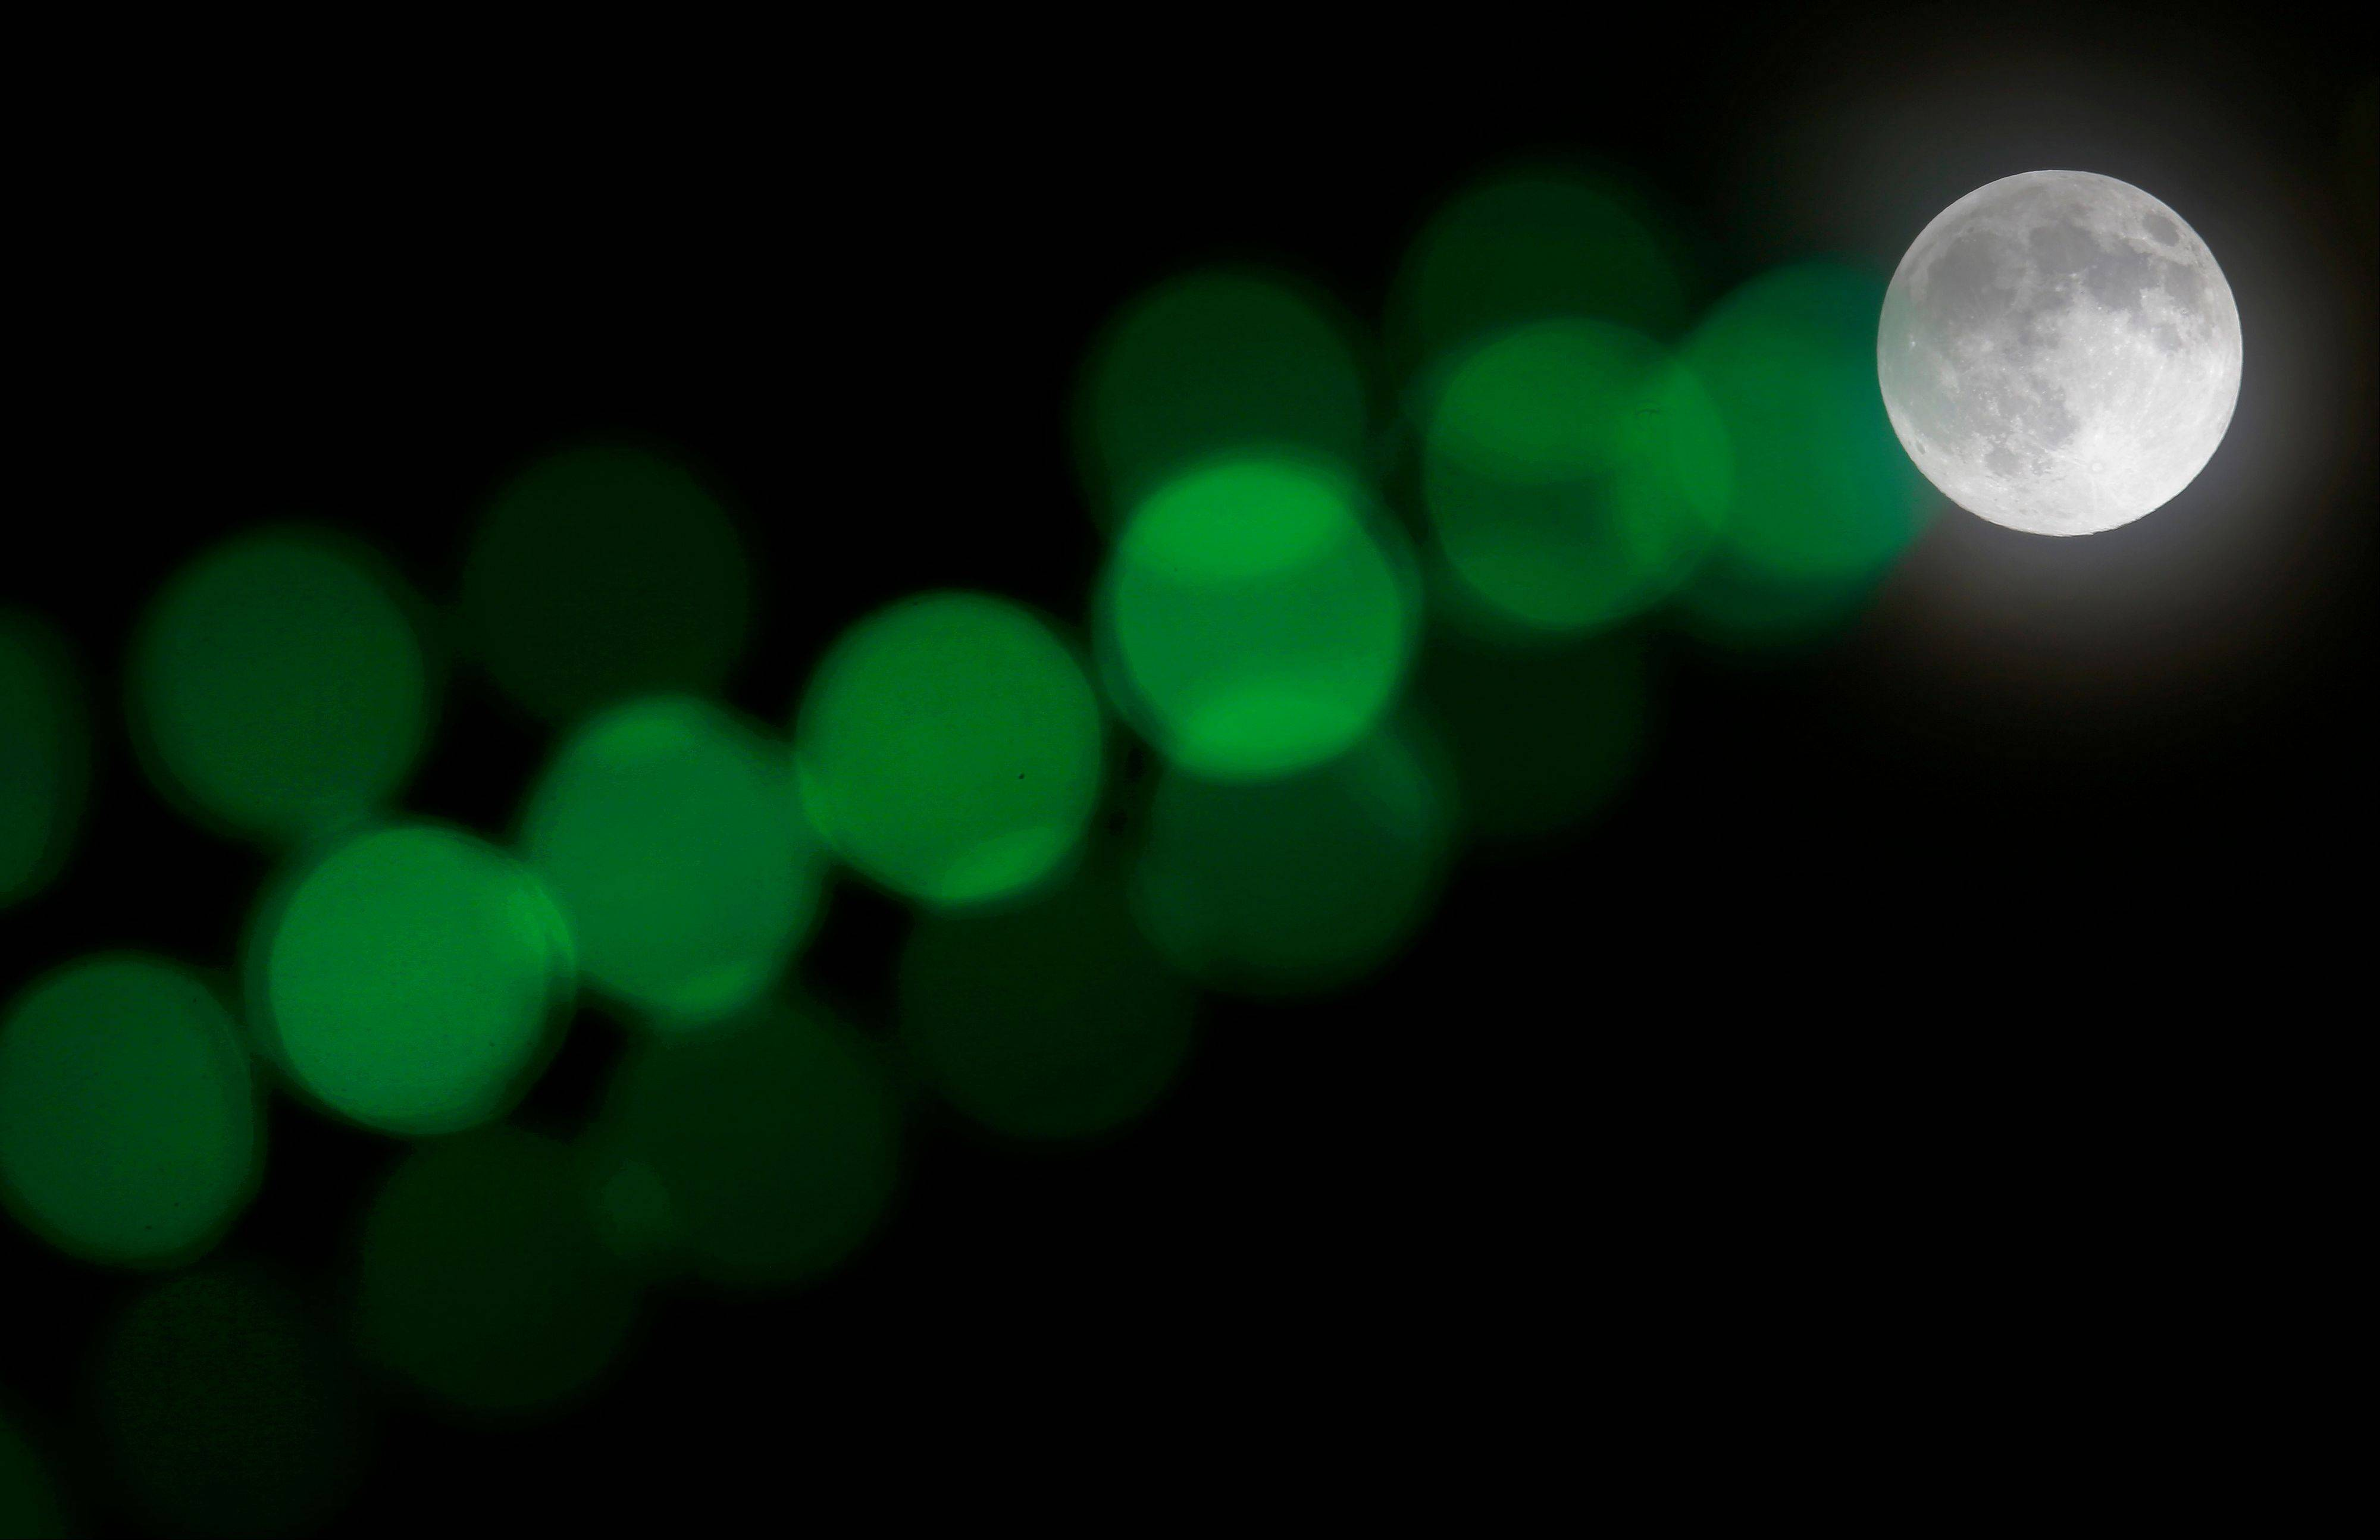 A full moon rises through a hazy sky past a string of green lights, Saturday, June 22, 2013, in Baltimore. The moon, which will reach its full stage on Sunday, is expected to be 13.5 percent closer to earth during a phenomenon known as supermoon.